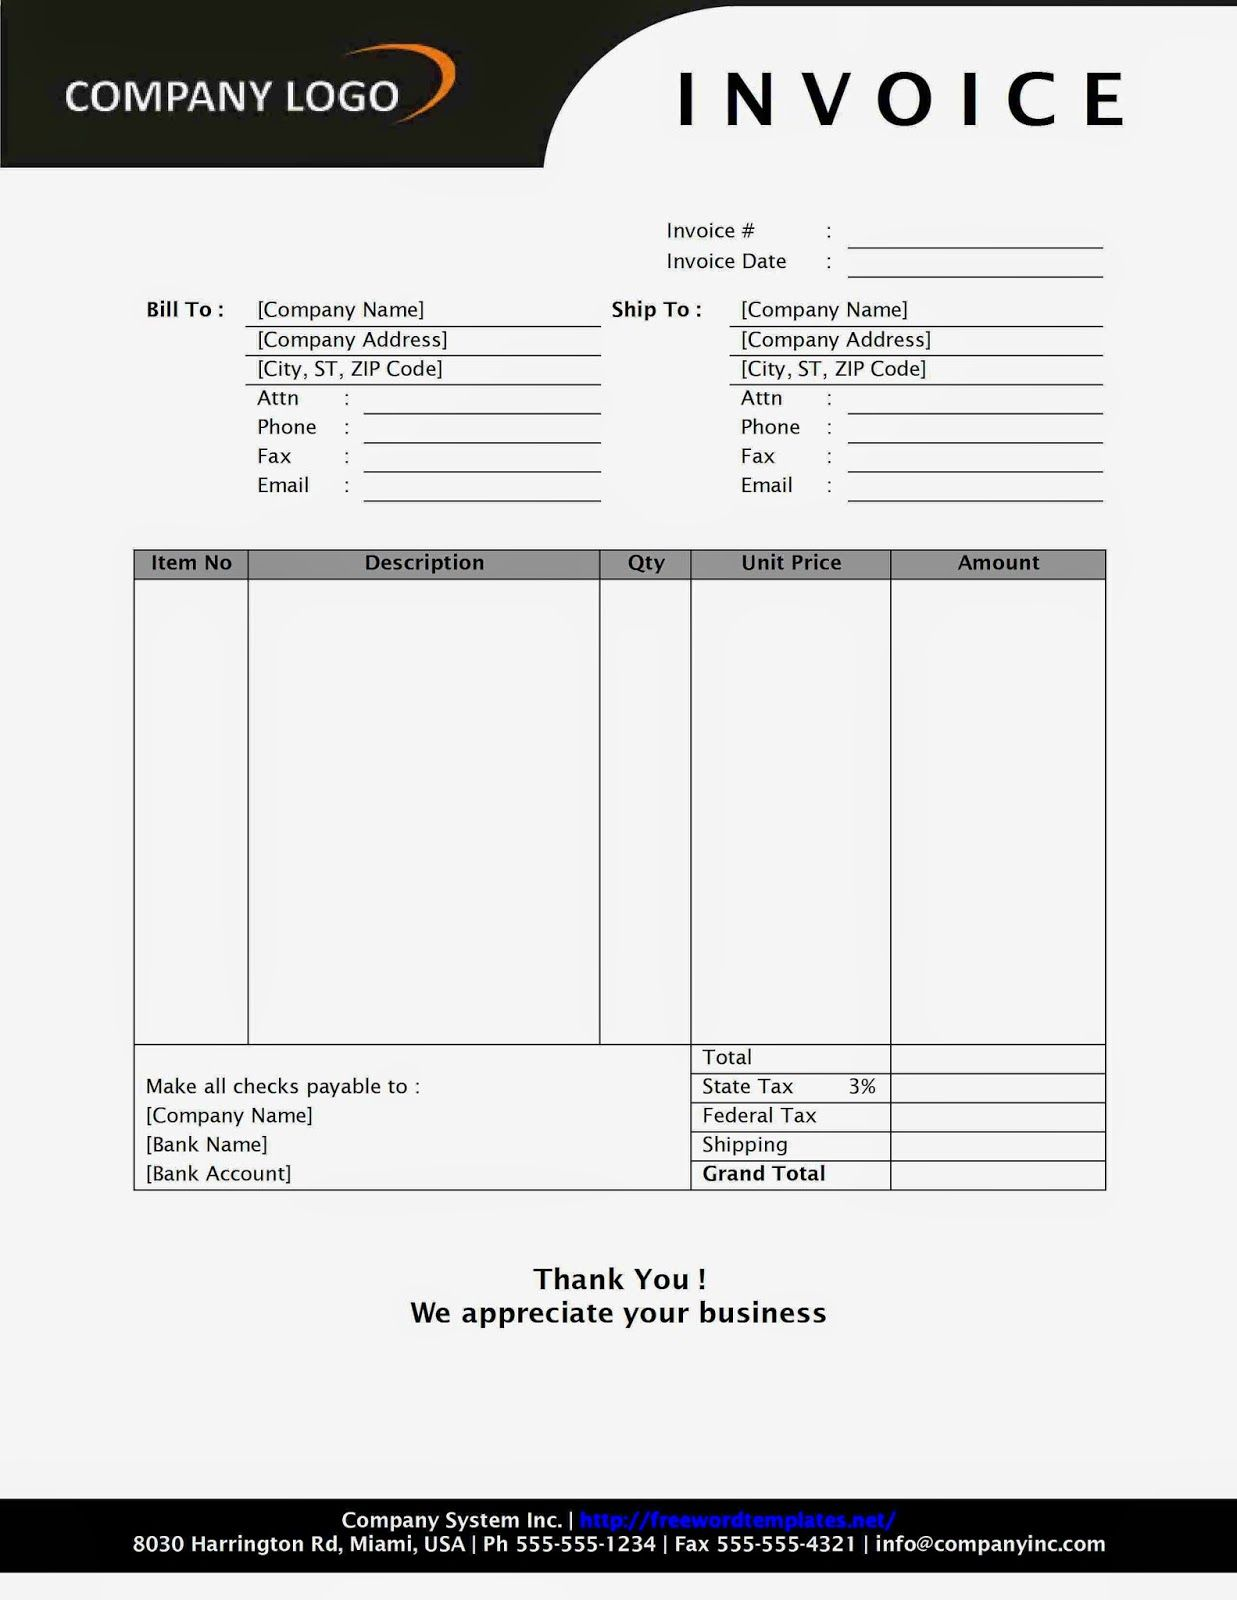 Simple Sales Invoice SD Style Books Worth Reading Pinterest - Simple free invoice template